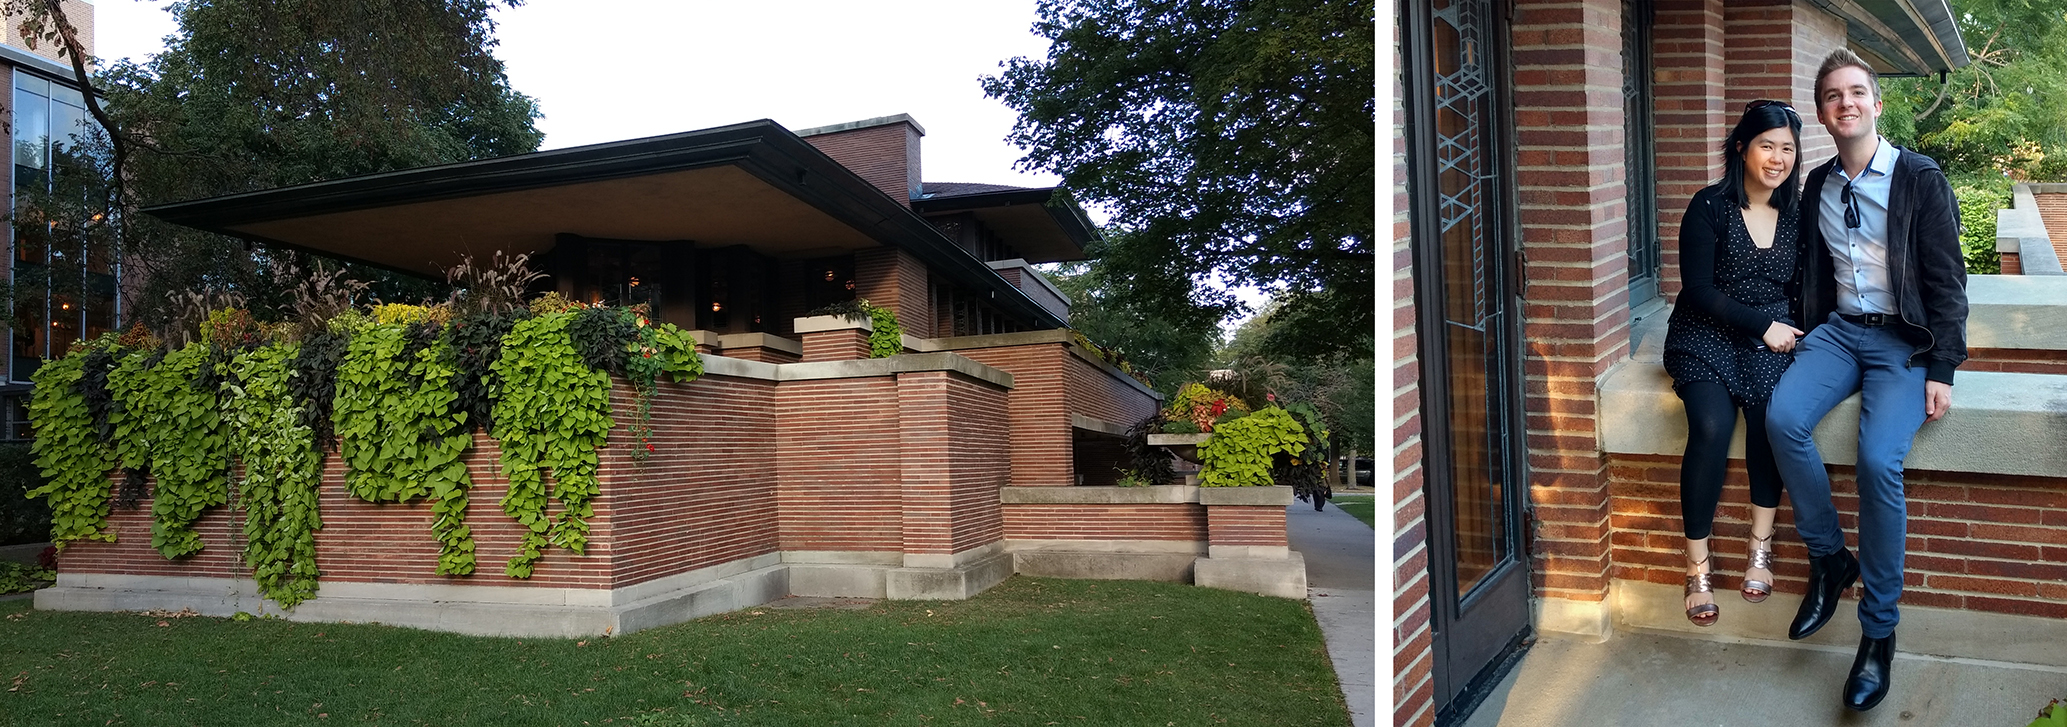 """Lachlan and Annie at the Robie House, IL -  """"Our tour group had a private cocktail evening at the Robie House. We were free to wander and explore the three-storey home""""."""